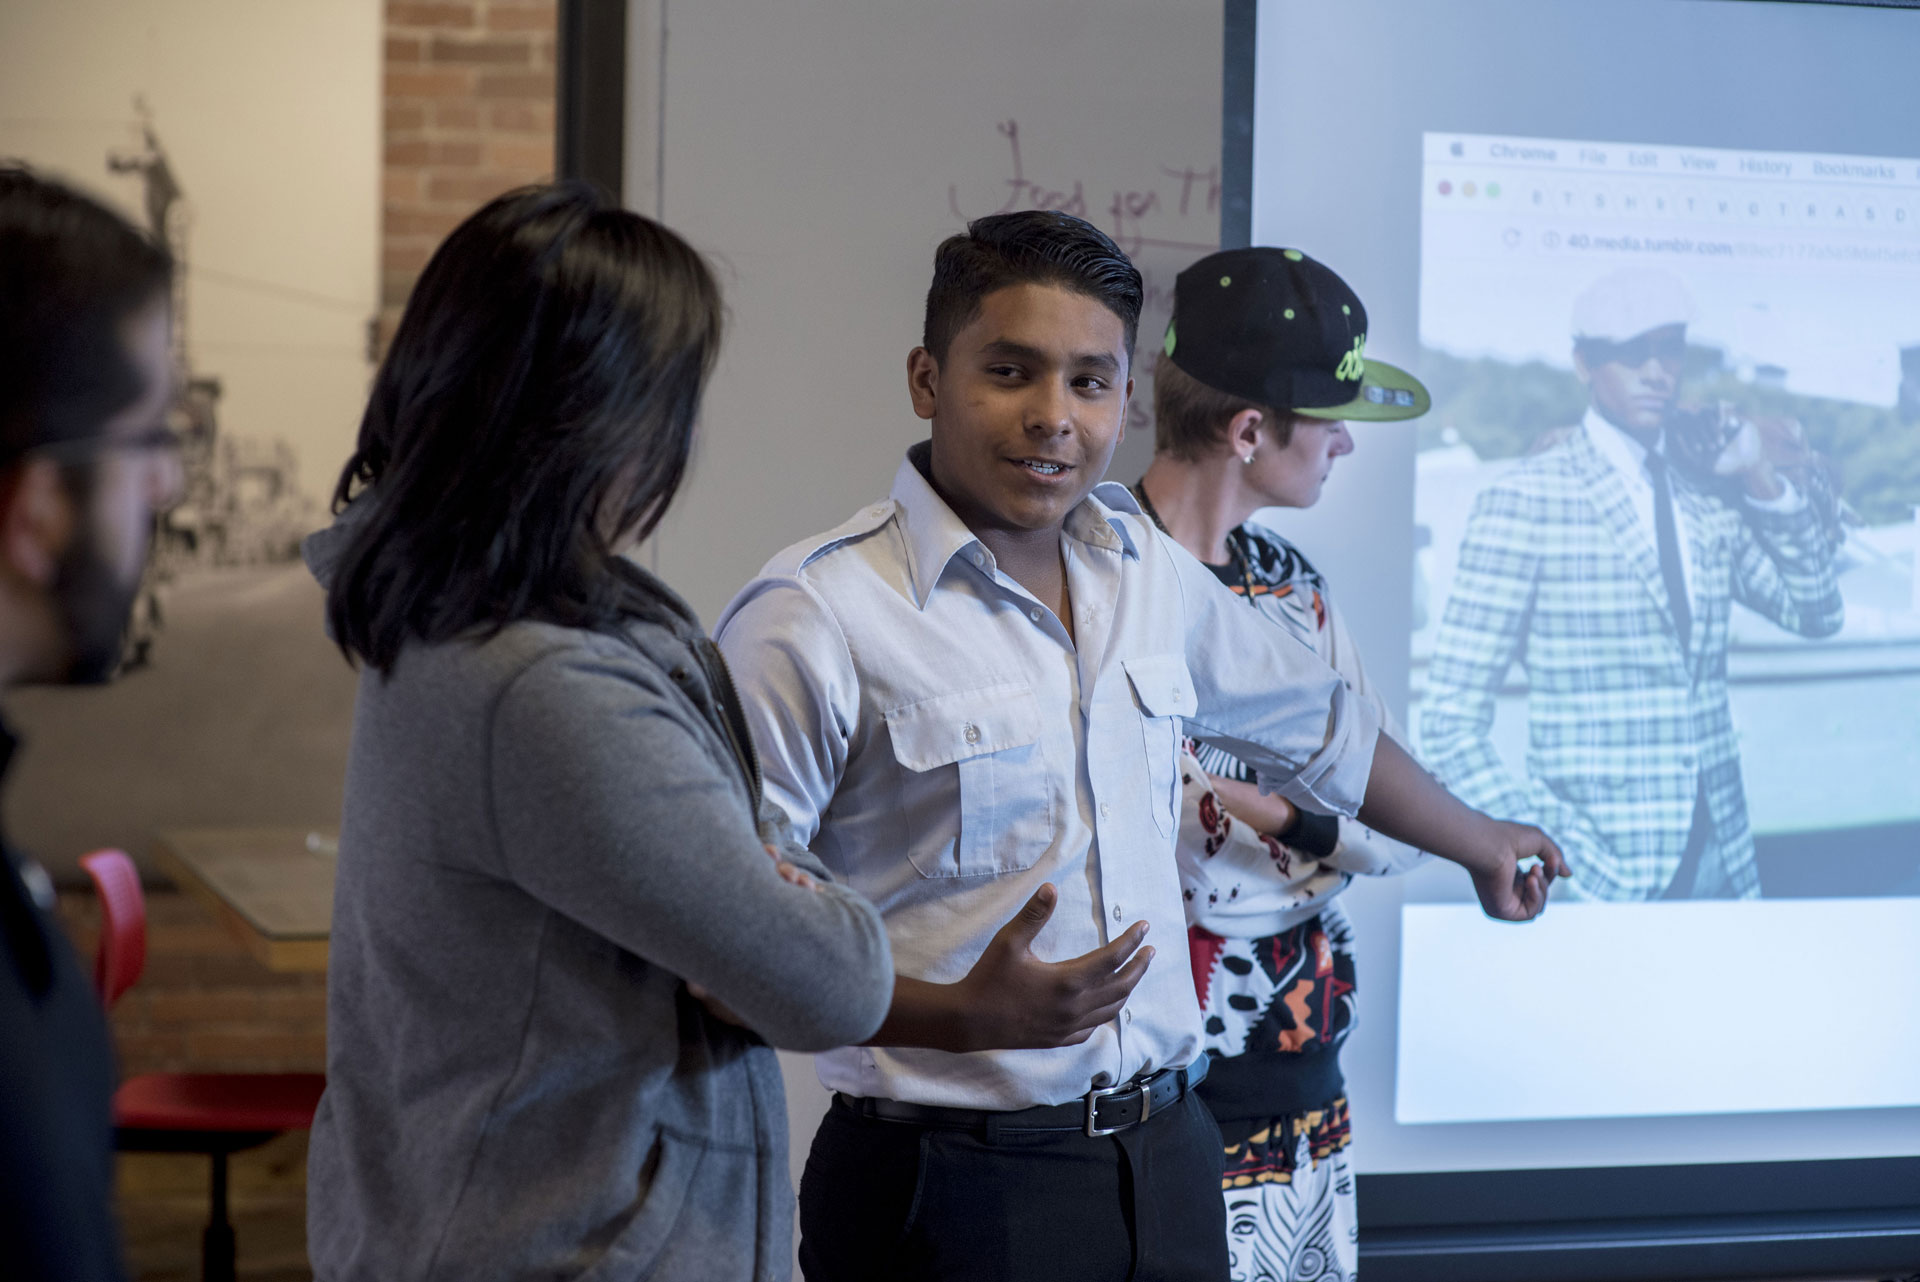 Students presenting in front of a projector screen